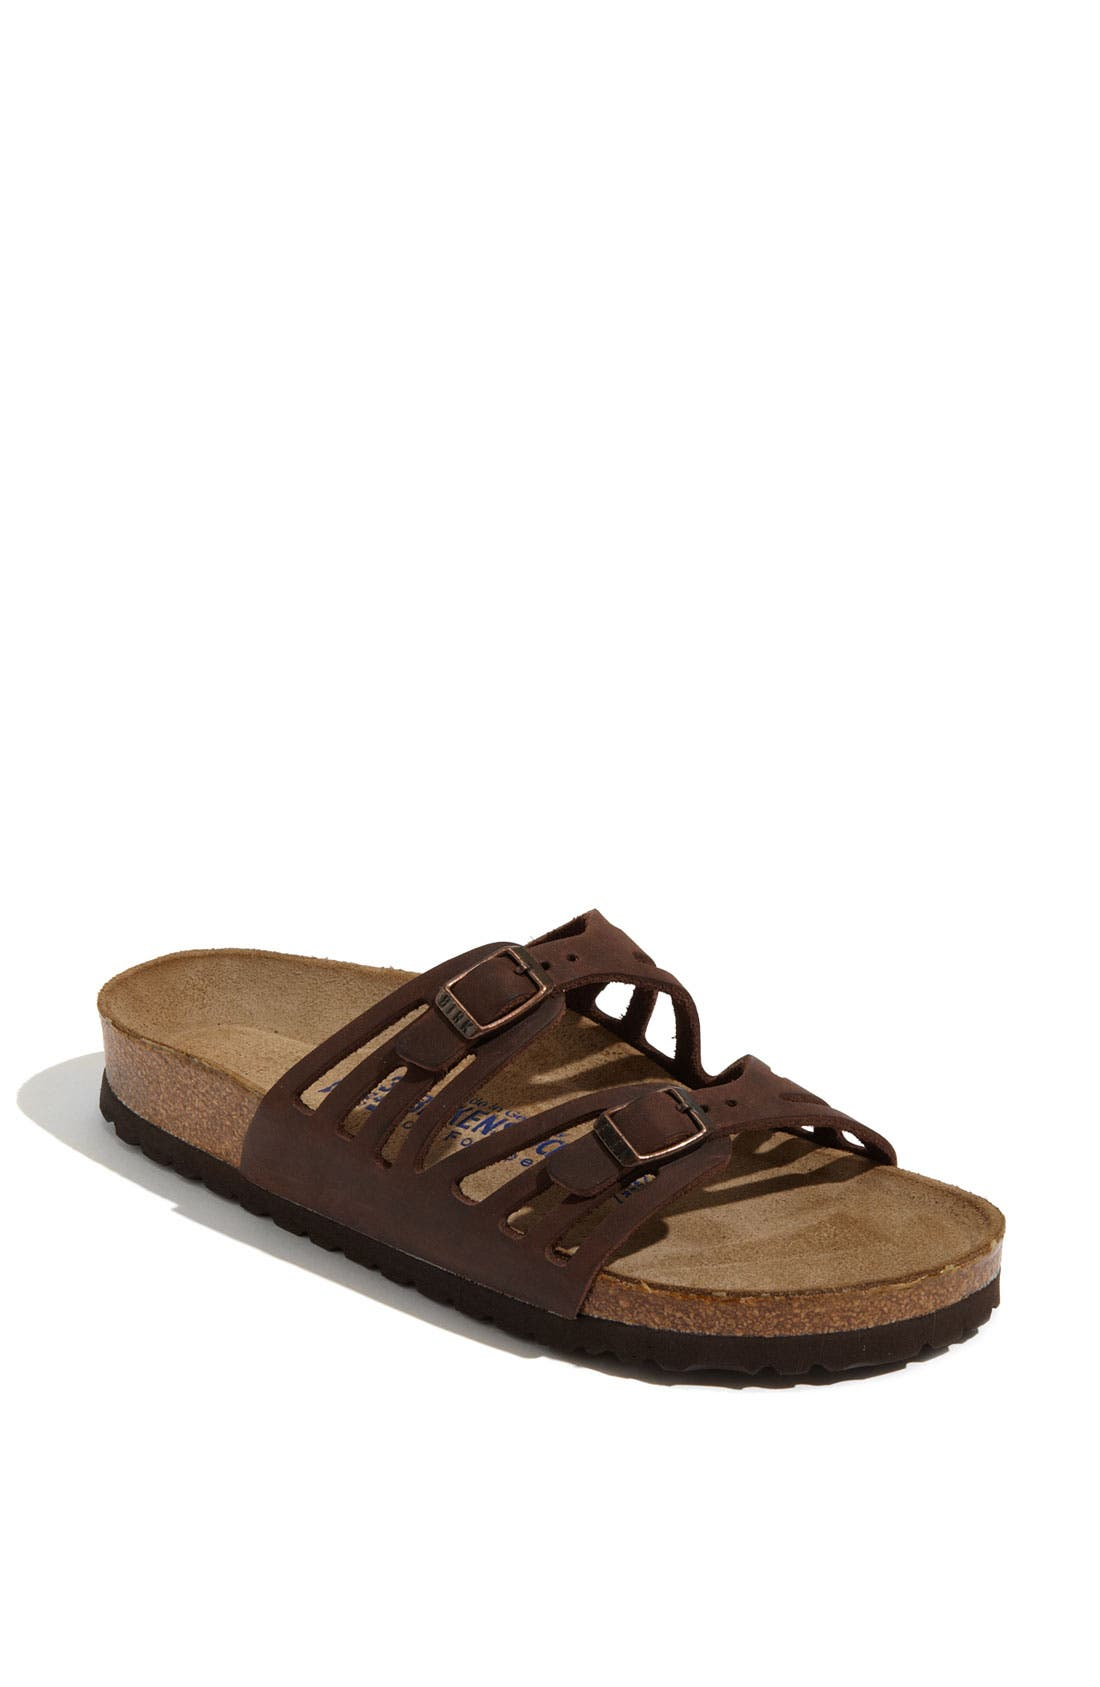 Main Image - Birkenstock Granada Soft Footbed Oiled Leather Sandal (Women)